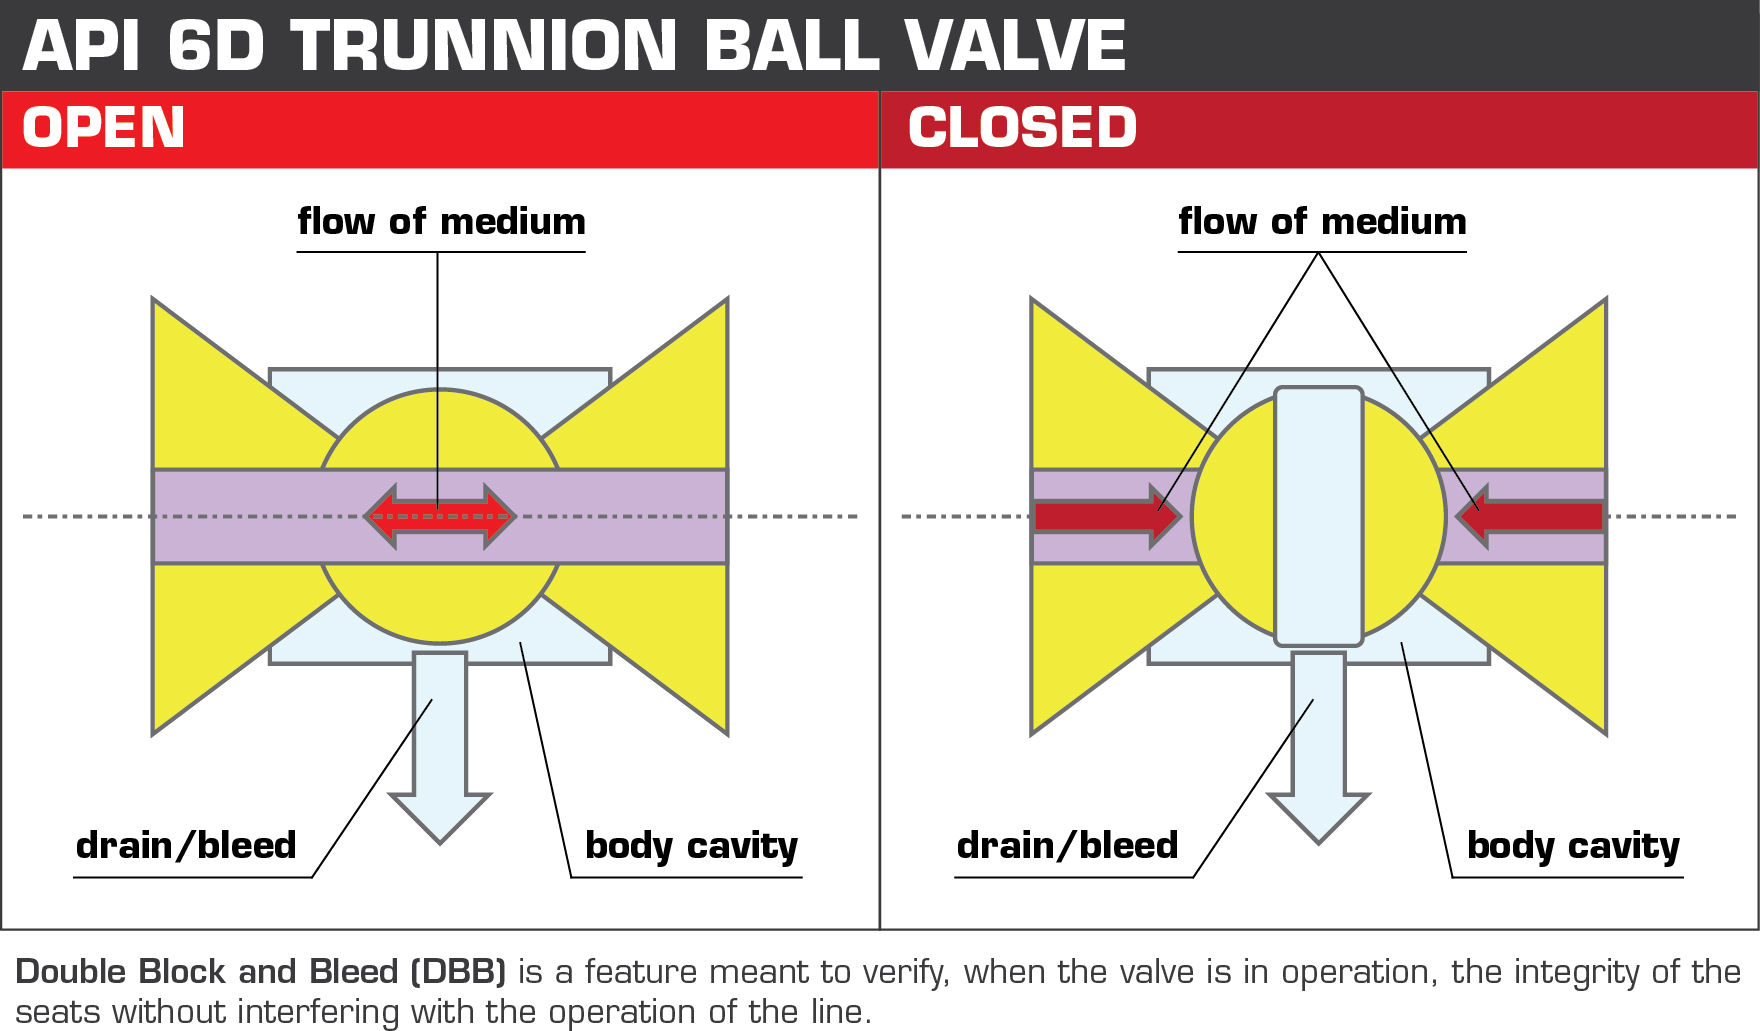 api 6d trunnion ball valve